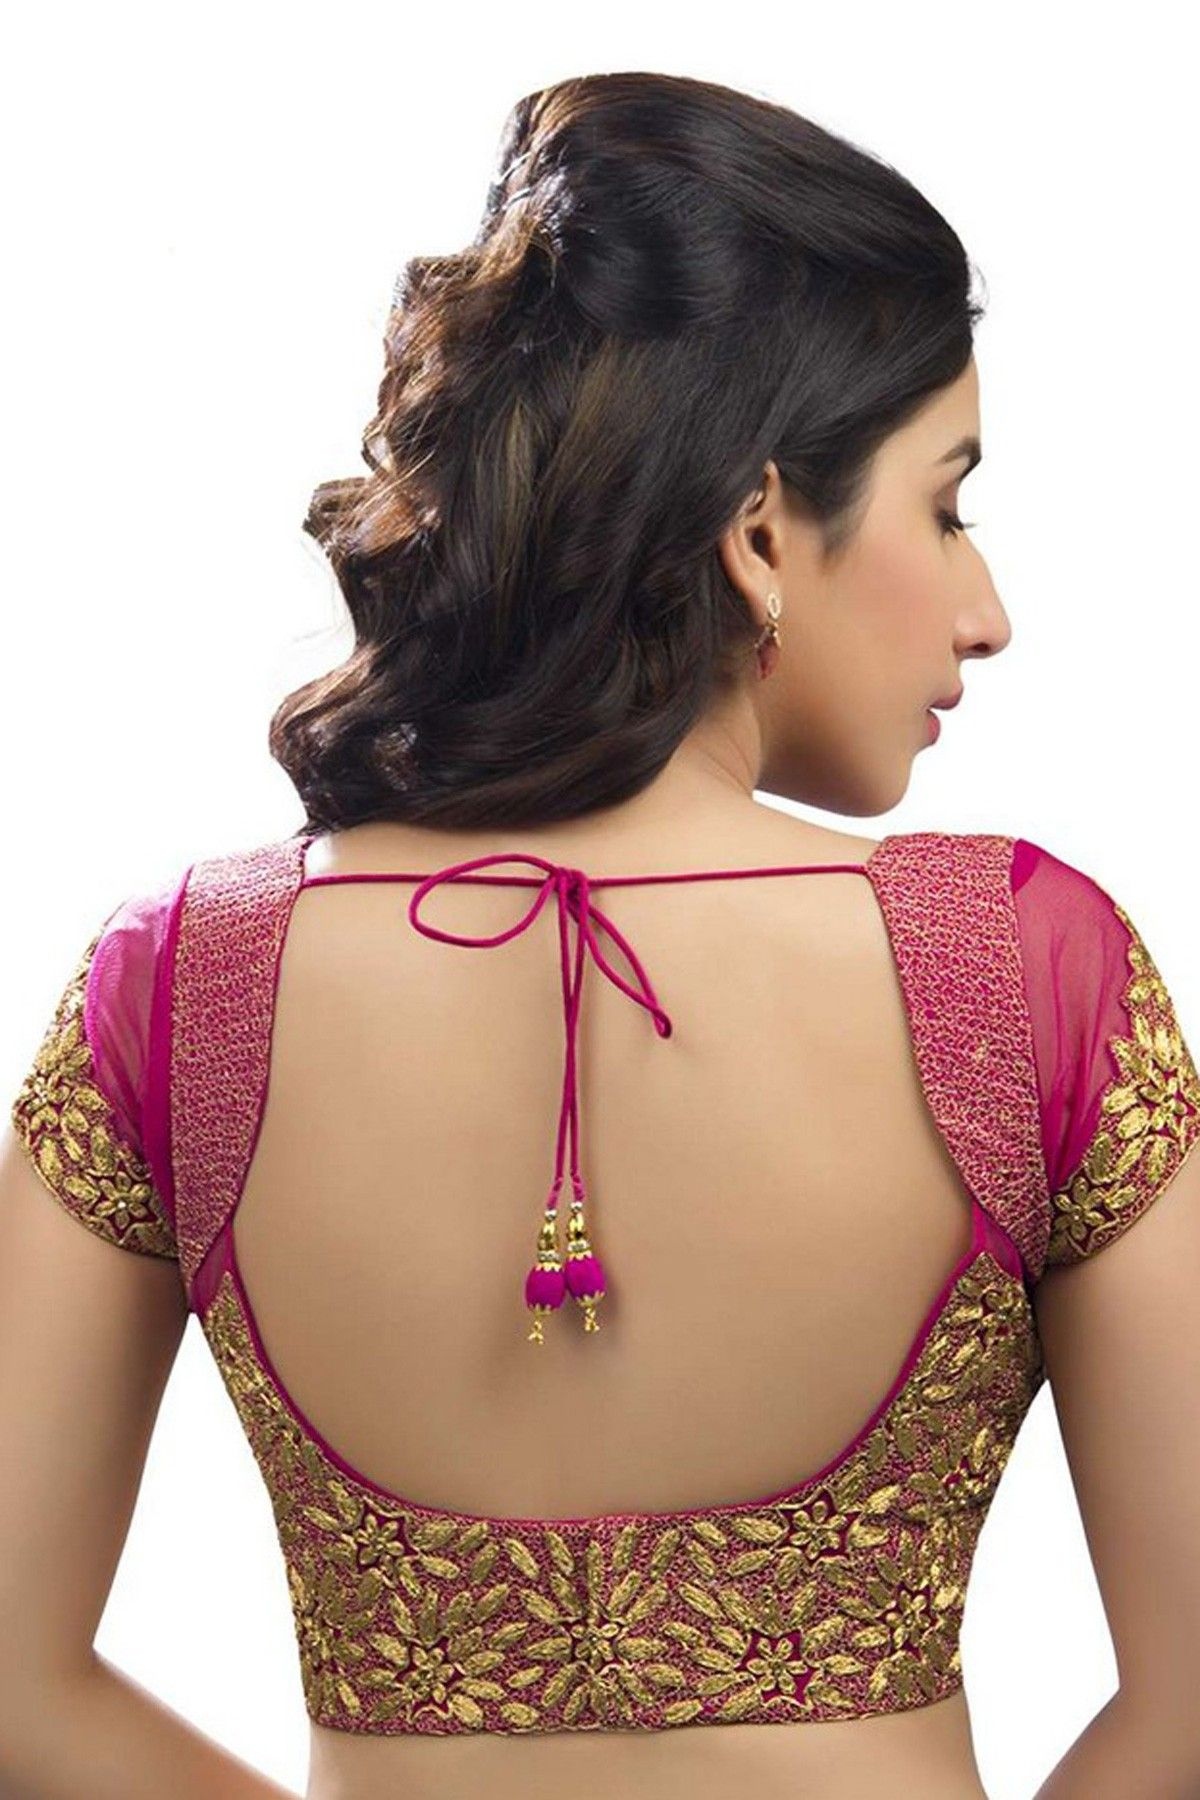 Saree blouse design sleeve dark pink u gold festive wear raw silk u net blouse with cap